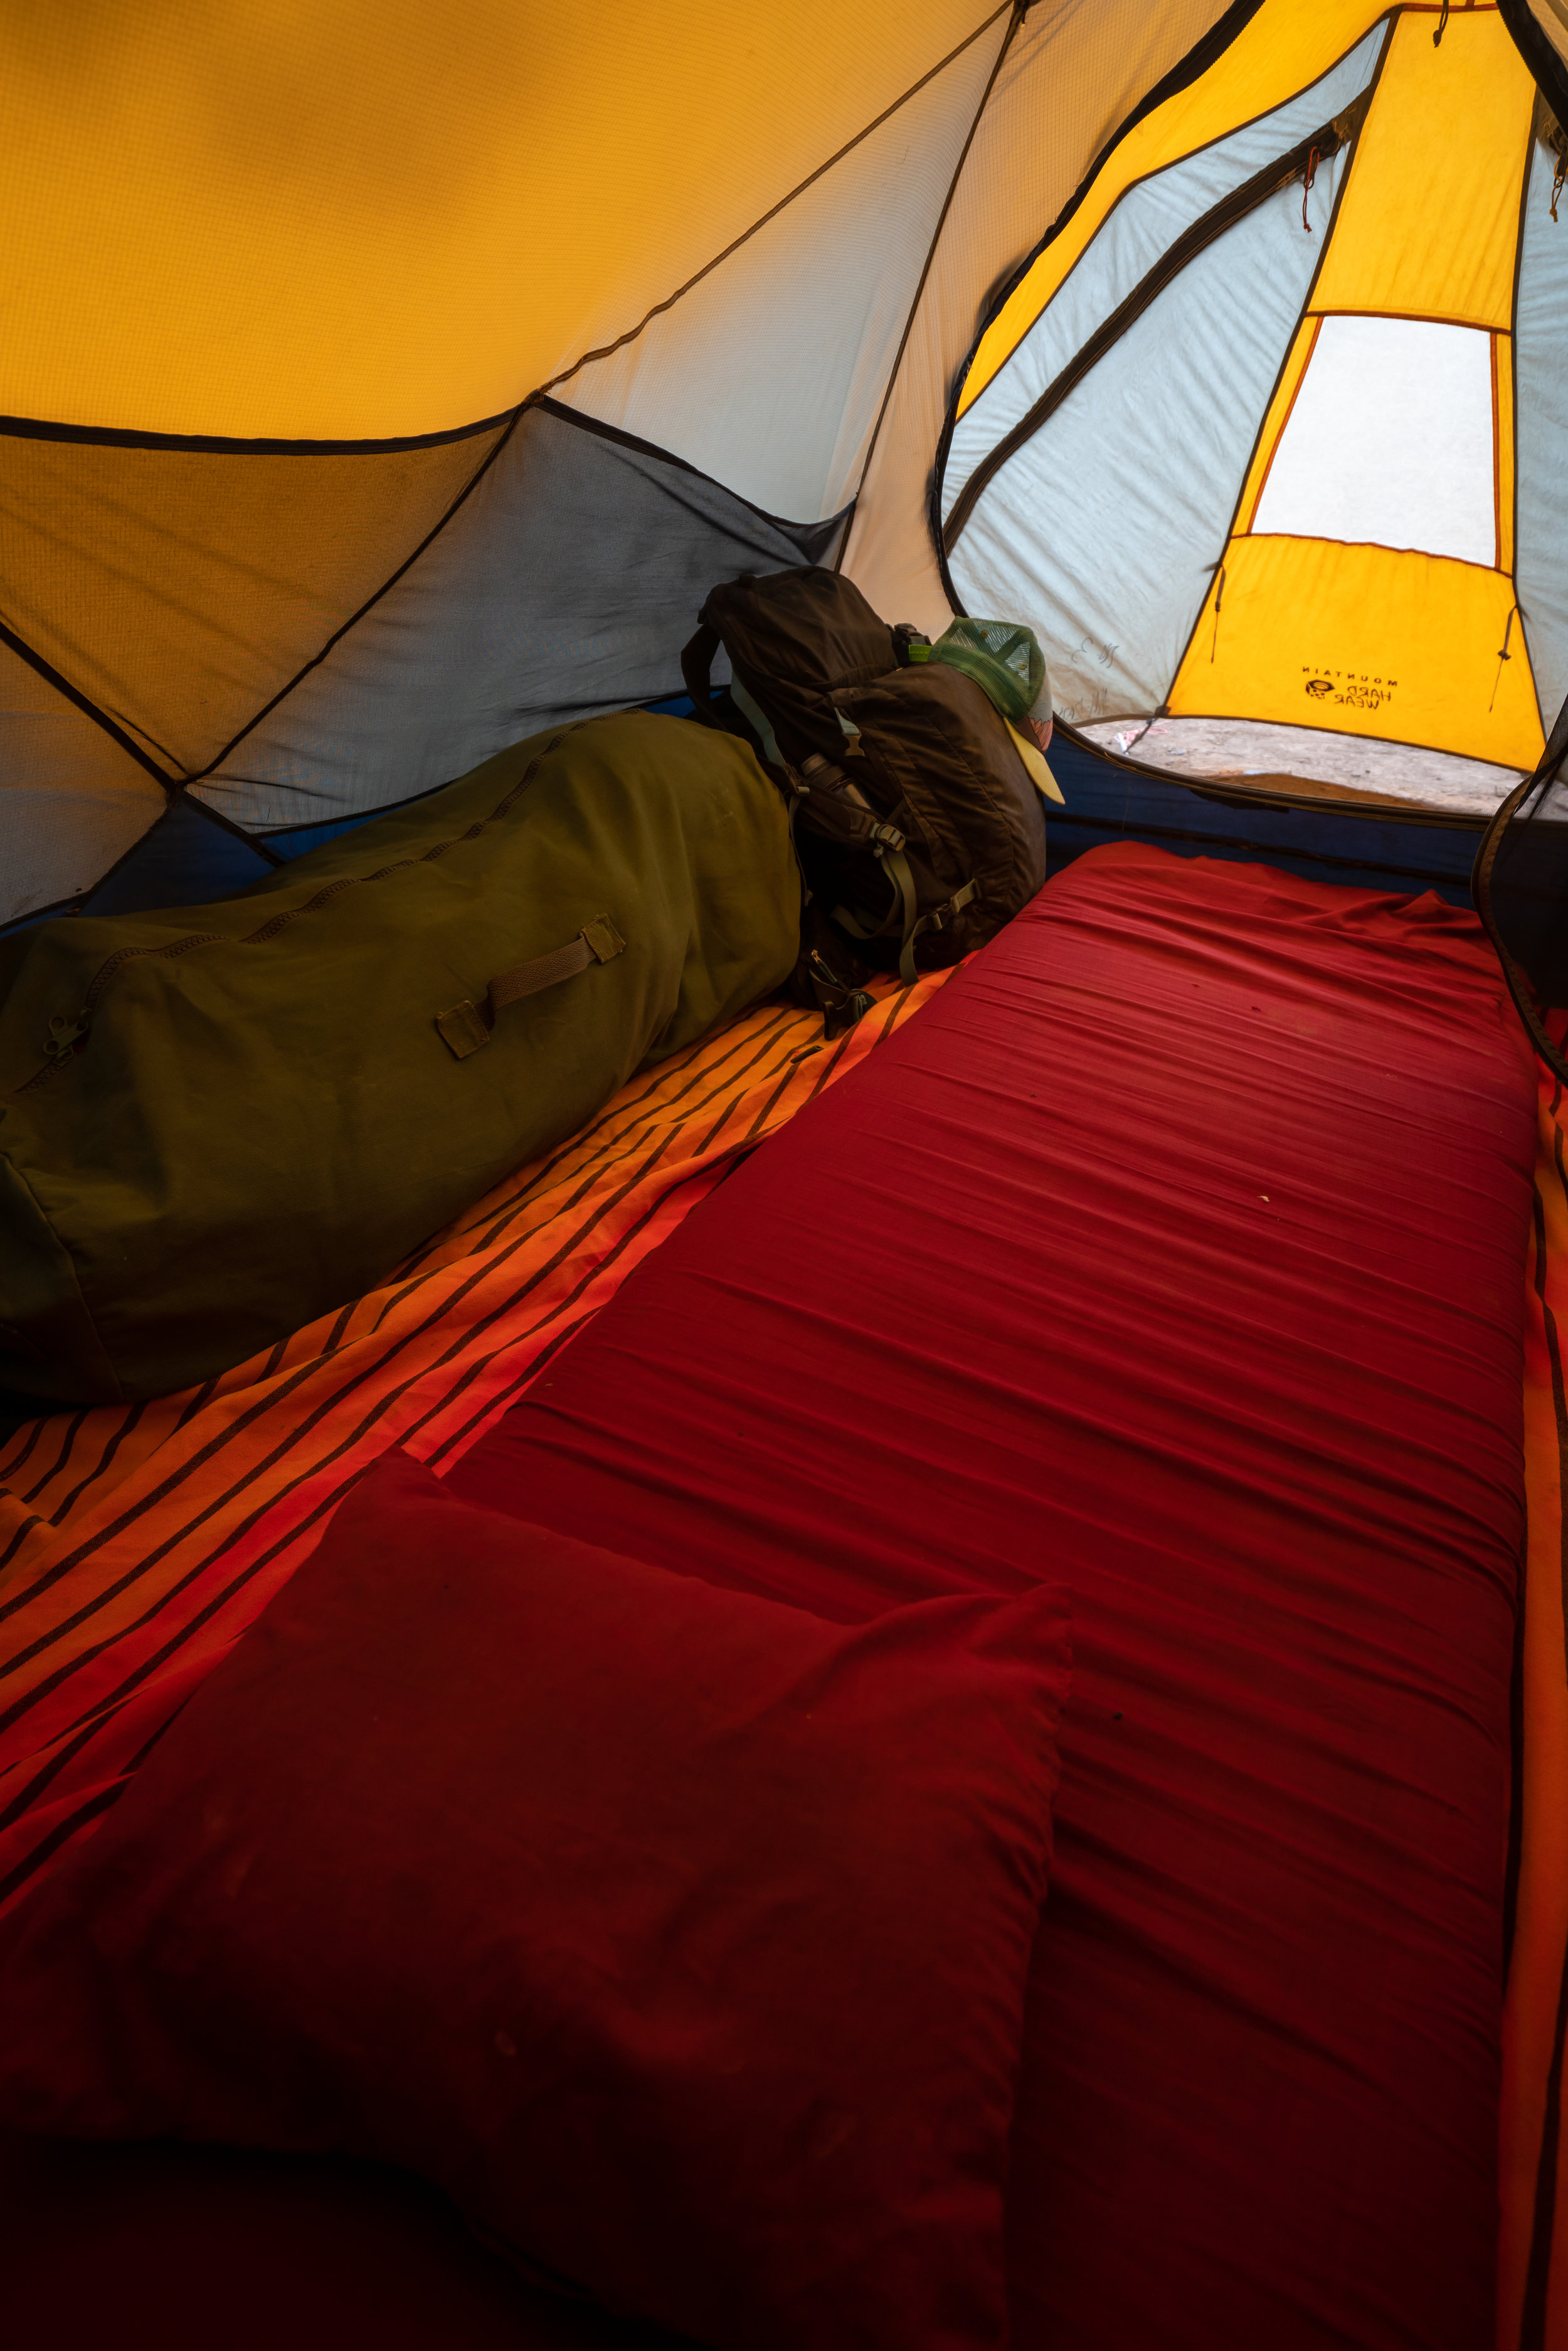 This is how your tent will look when you arrive to camp.